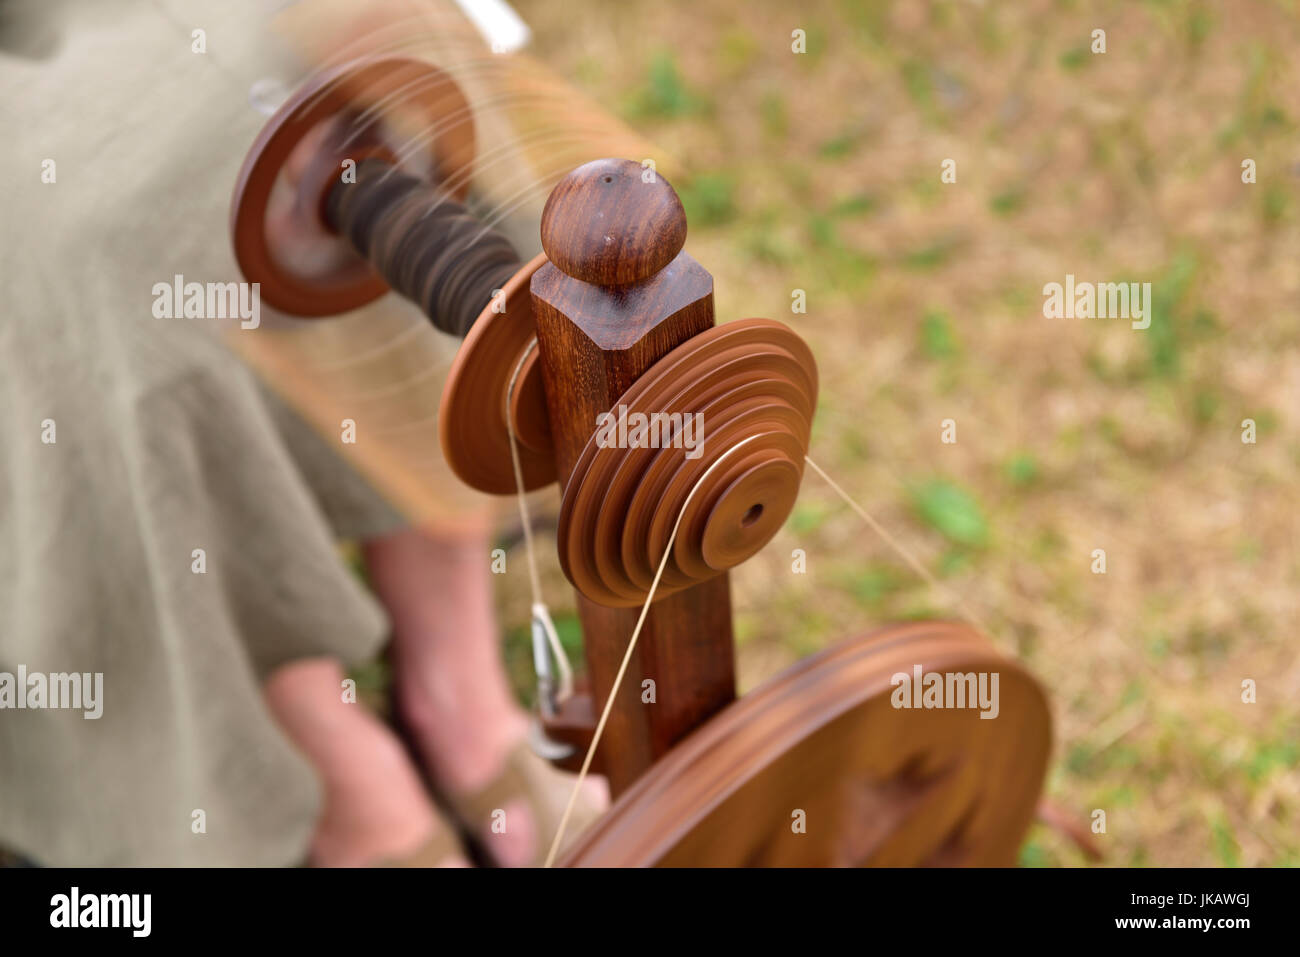 Close-up of bobbin pulley on spinning wheel bobbin with motion blur - Stock Image